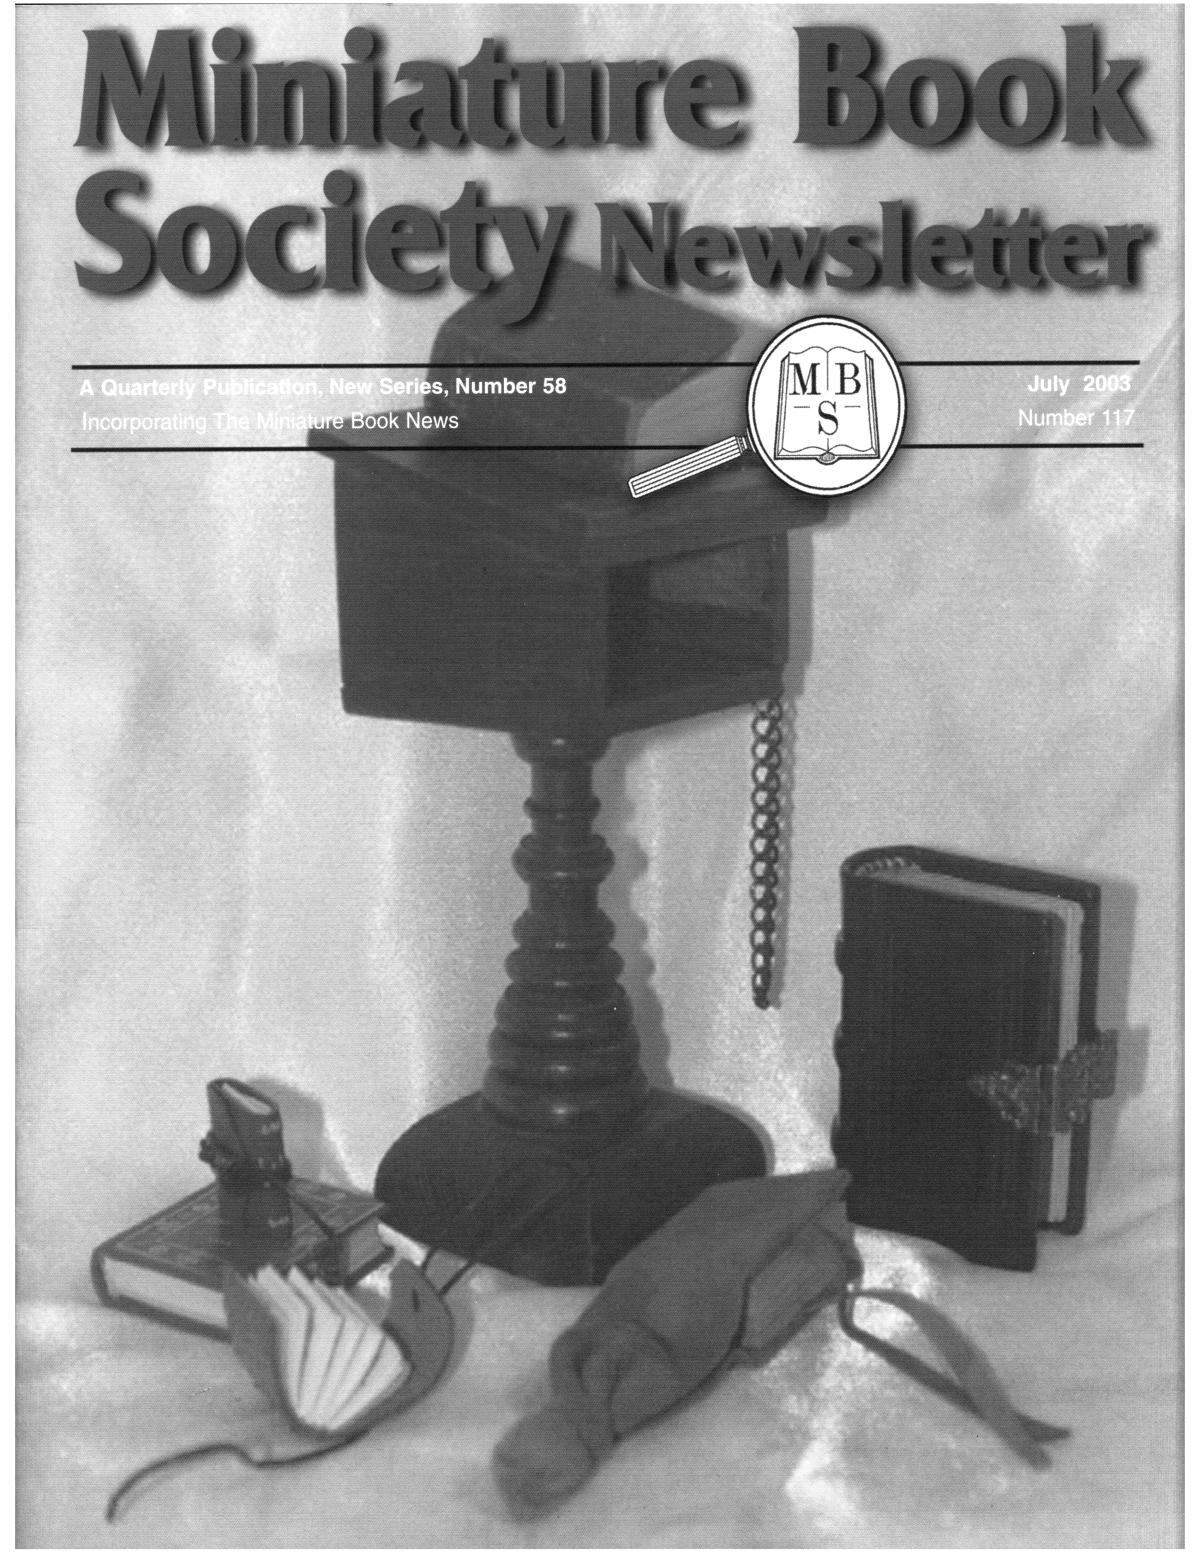 Miniature Book Society Newsletter 2003 July                                                                                                      Front Cover